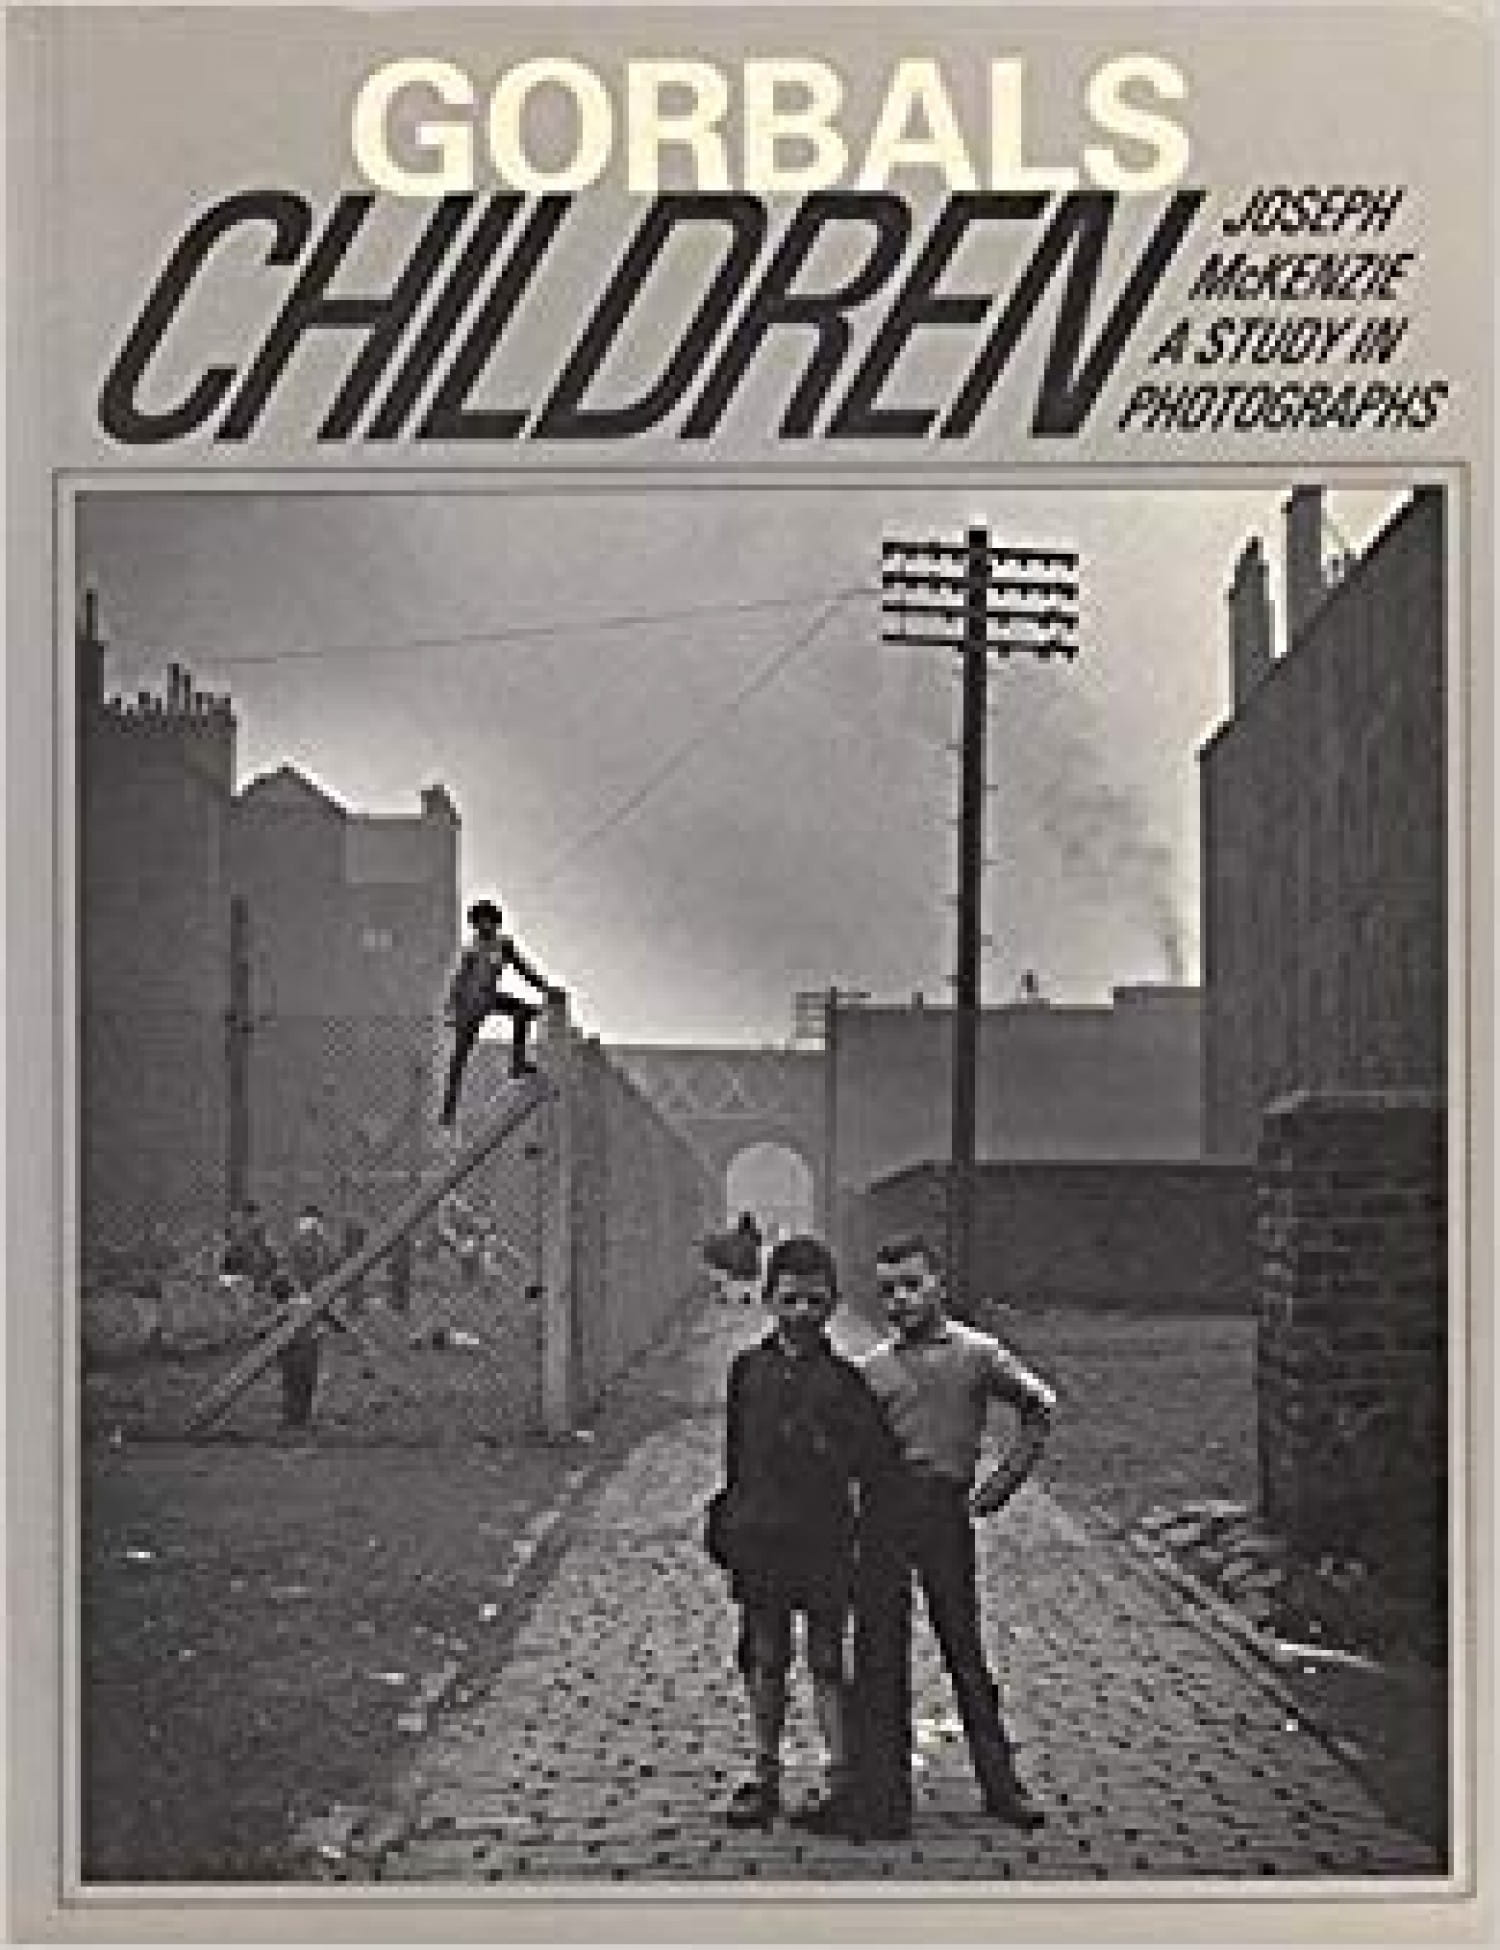 McKenzie's study of childhood life in the Gorbals. Think that's the old 'Venny' adventure playground, opened and run by then school teacher Matt McGiinn, in the background